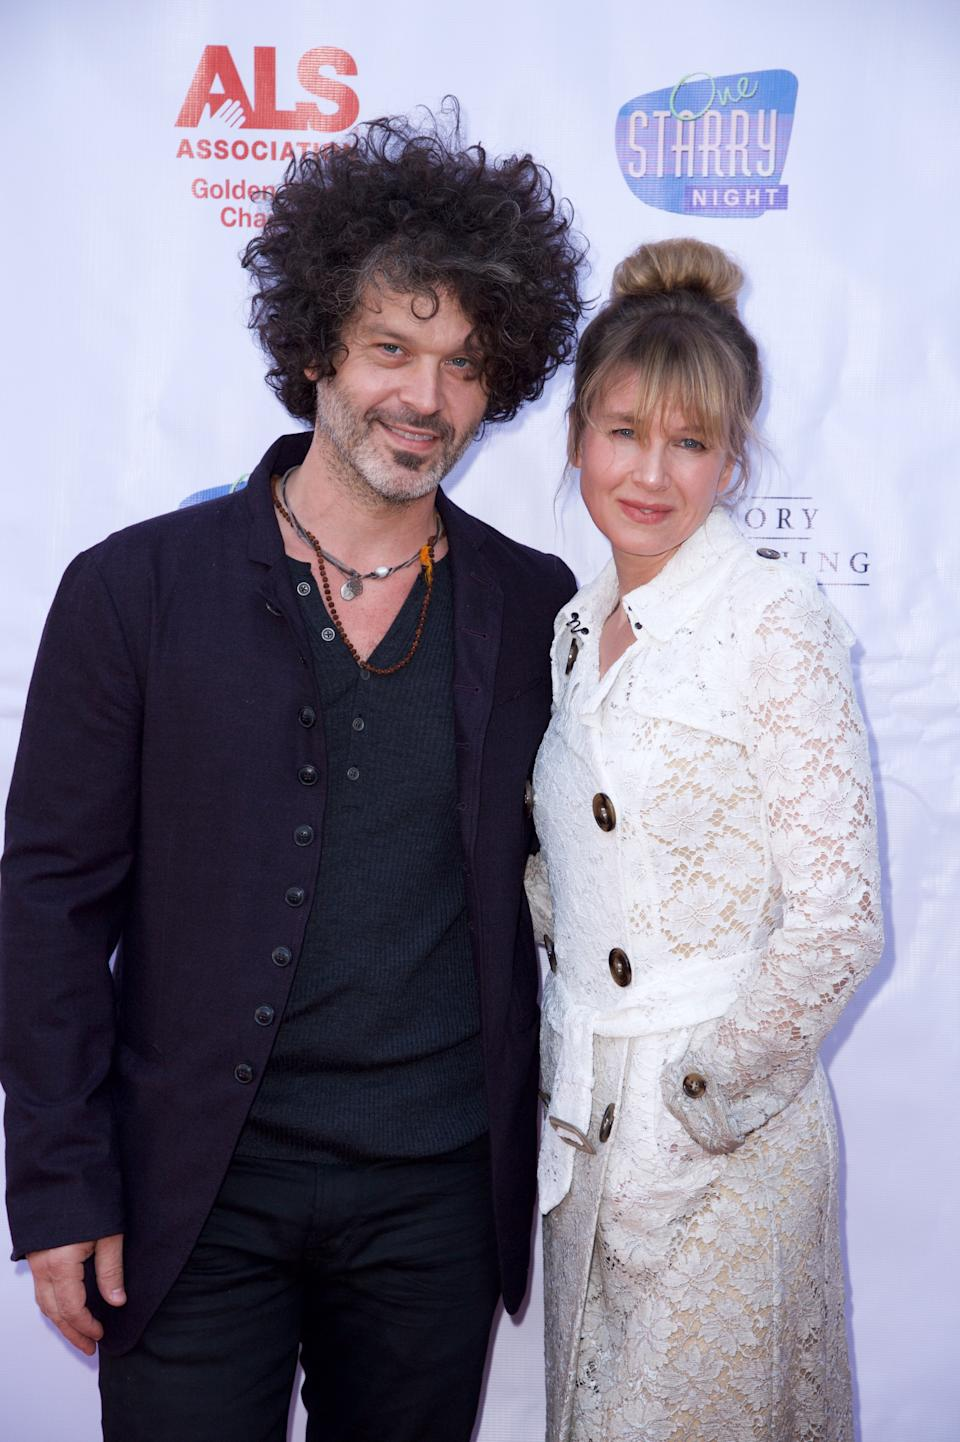 Zellweger and her partner Doyle Bramhall III attend a gala in support of the ALS Association in Pasadena, California, in 2015. (Photo: Earl Gibson III/Getty Images)